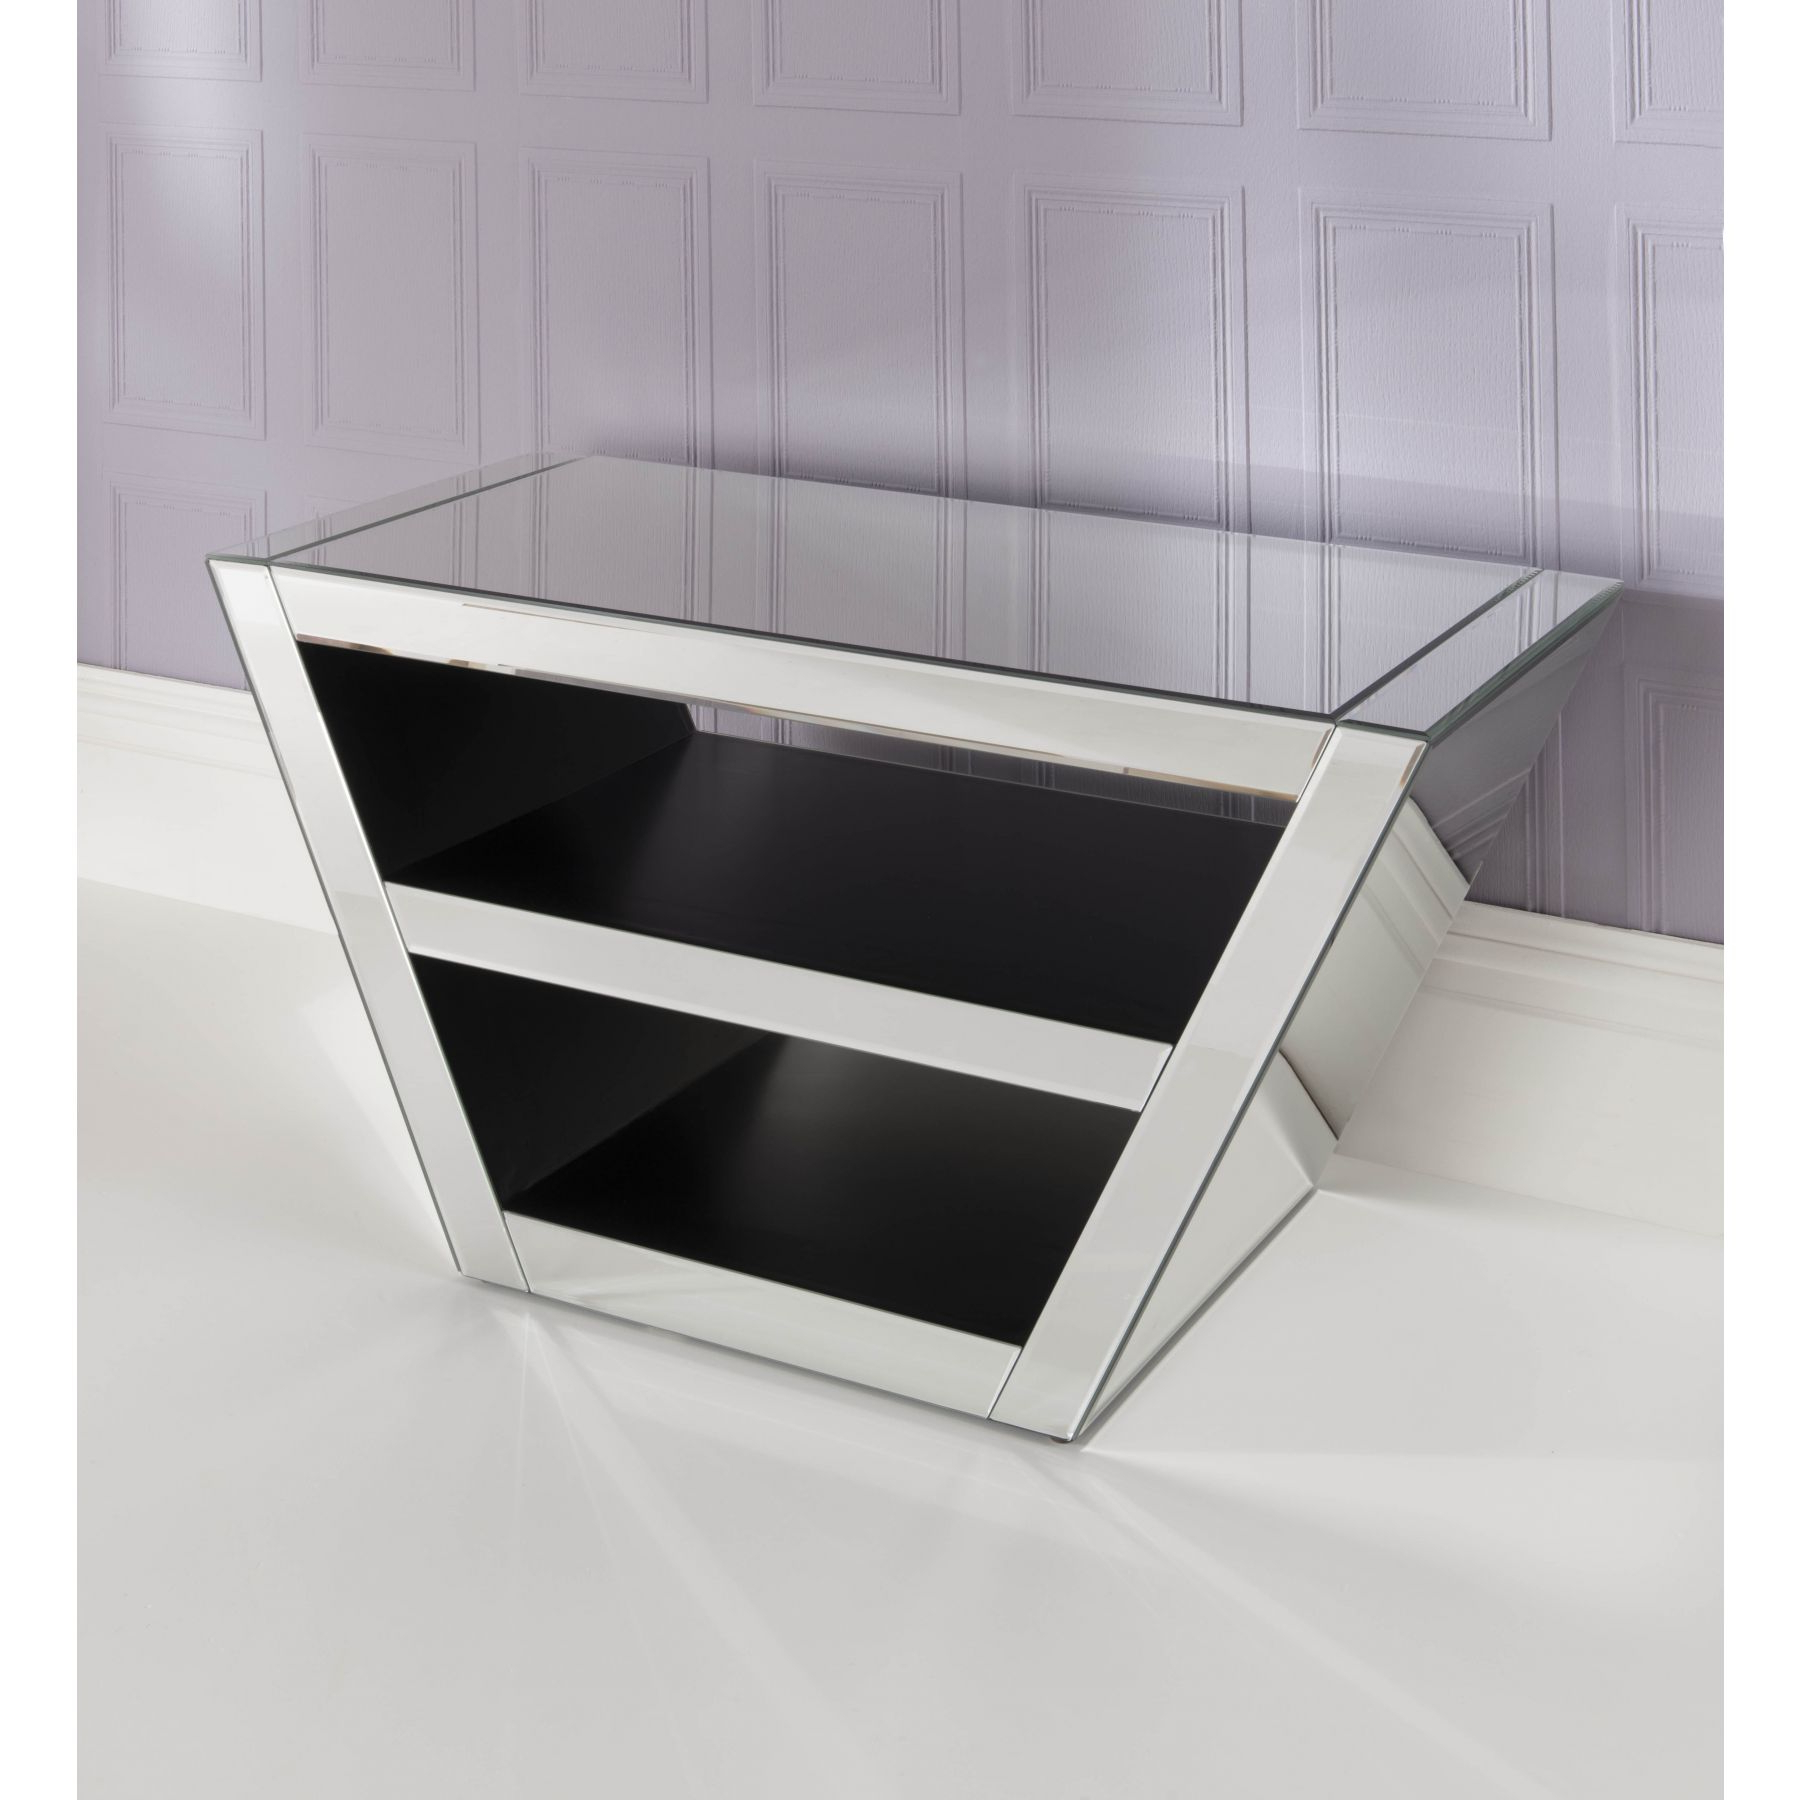 Homesdirect365 Regarding Widely Used Mirrored Tv Stands (View 10 of 20)